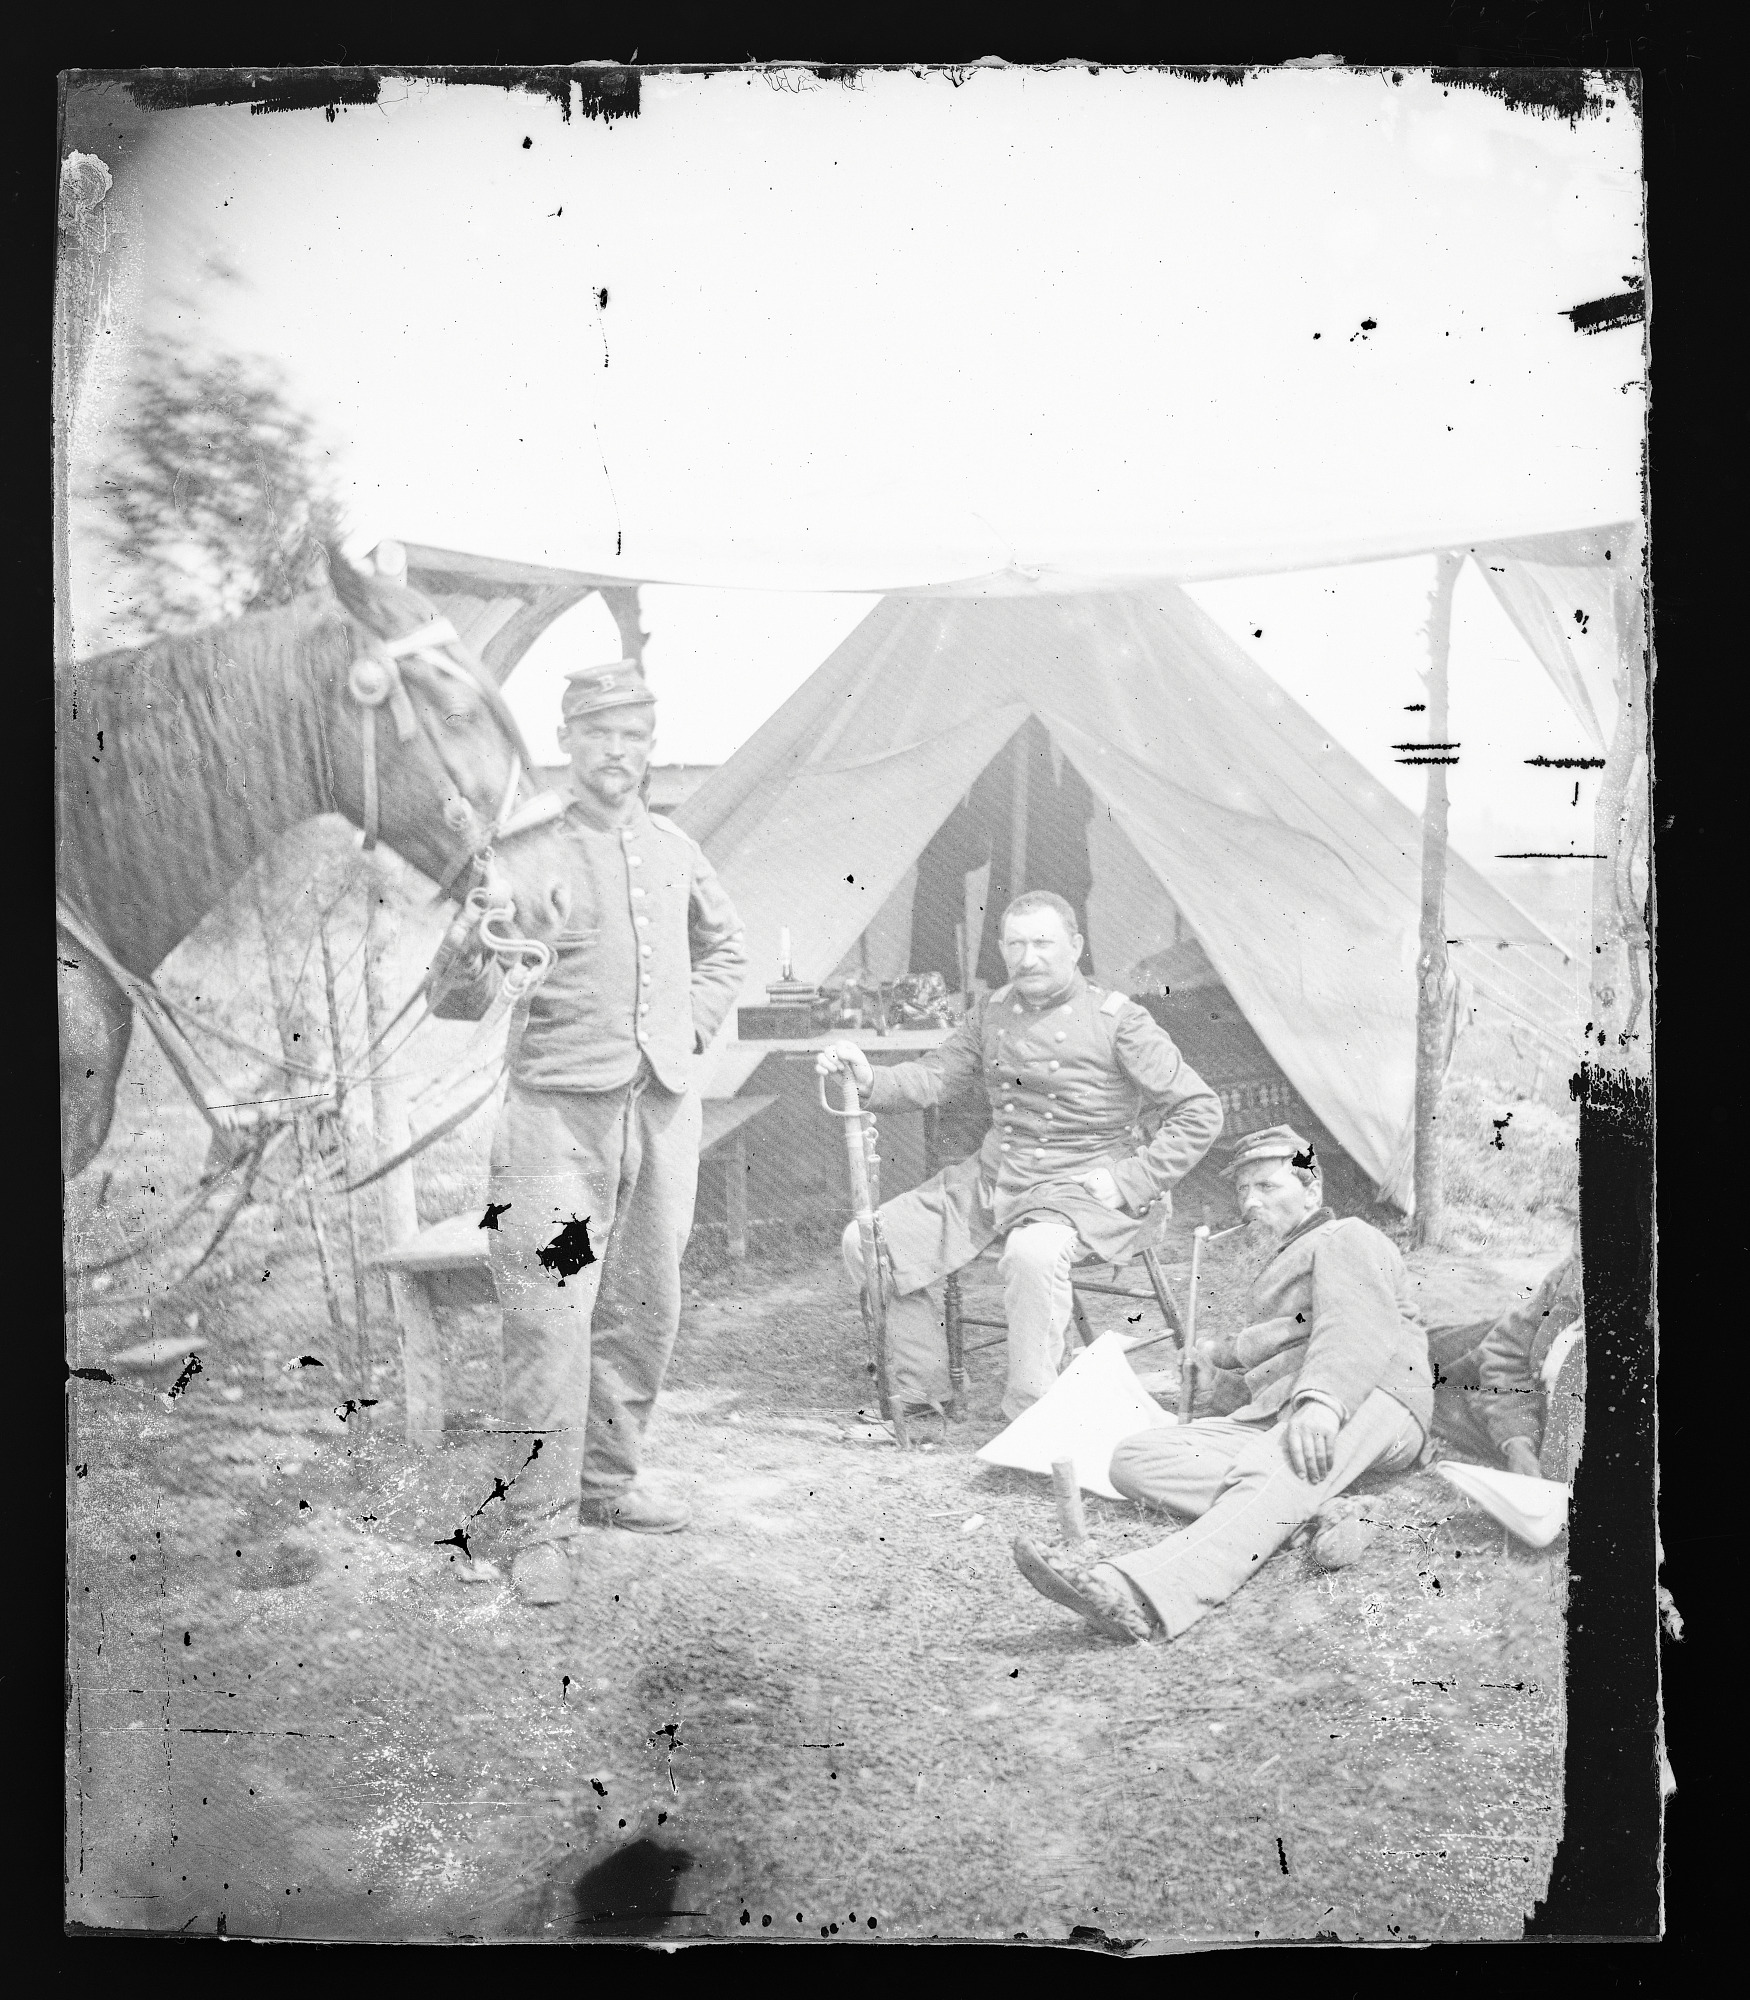 Civil War Camp Scenes / Possibly New York 7th Regiment